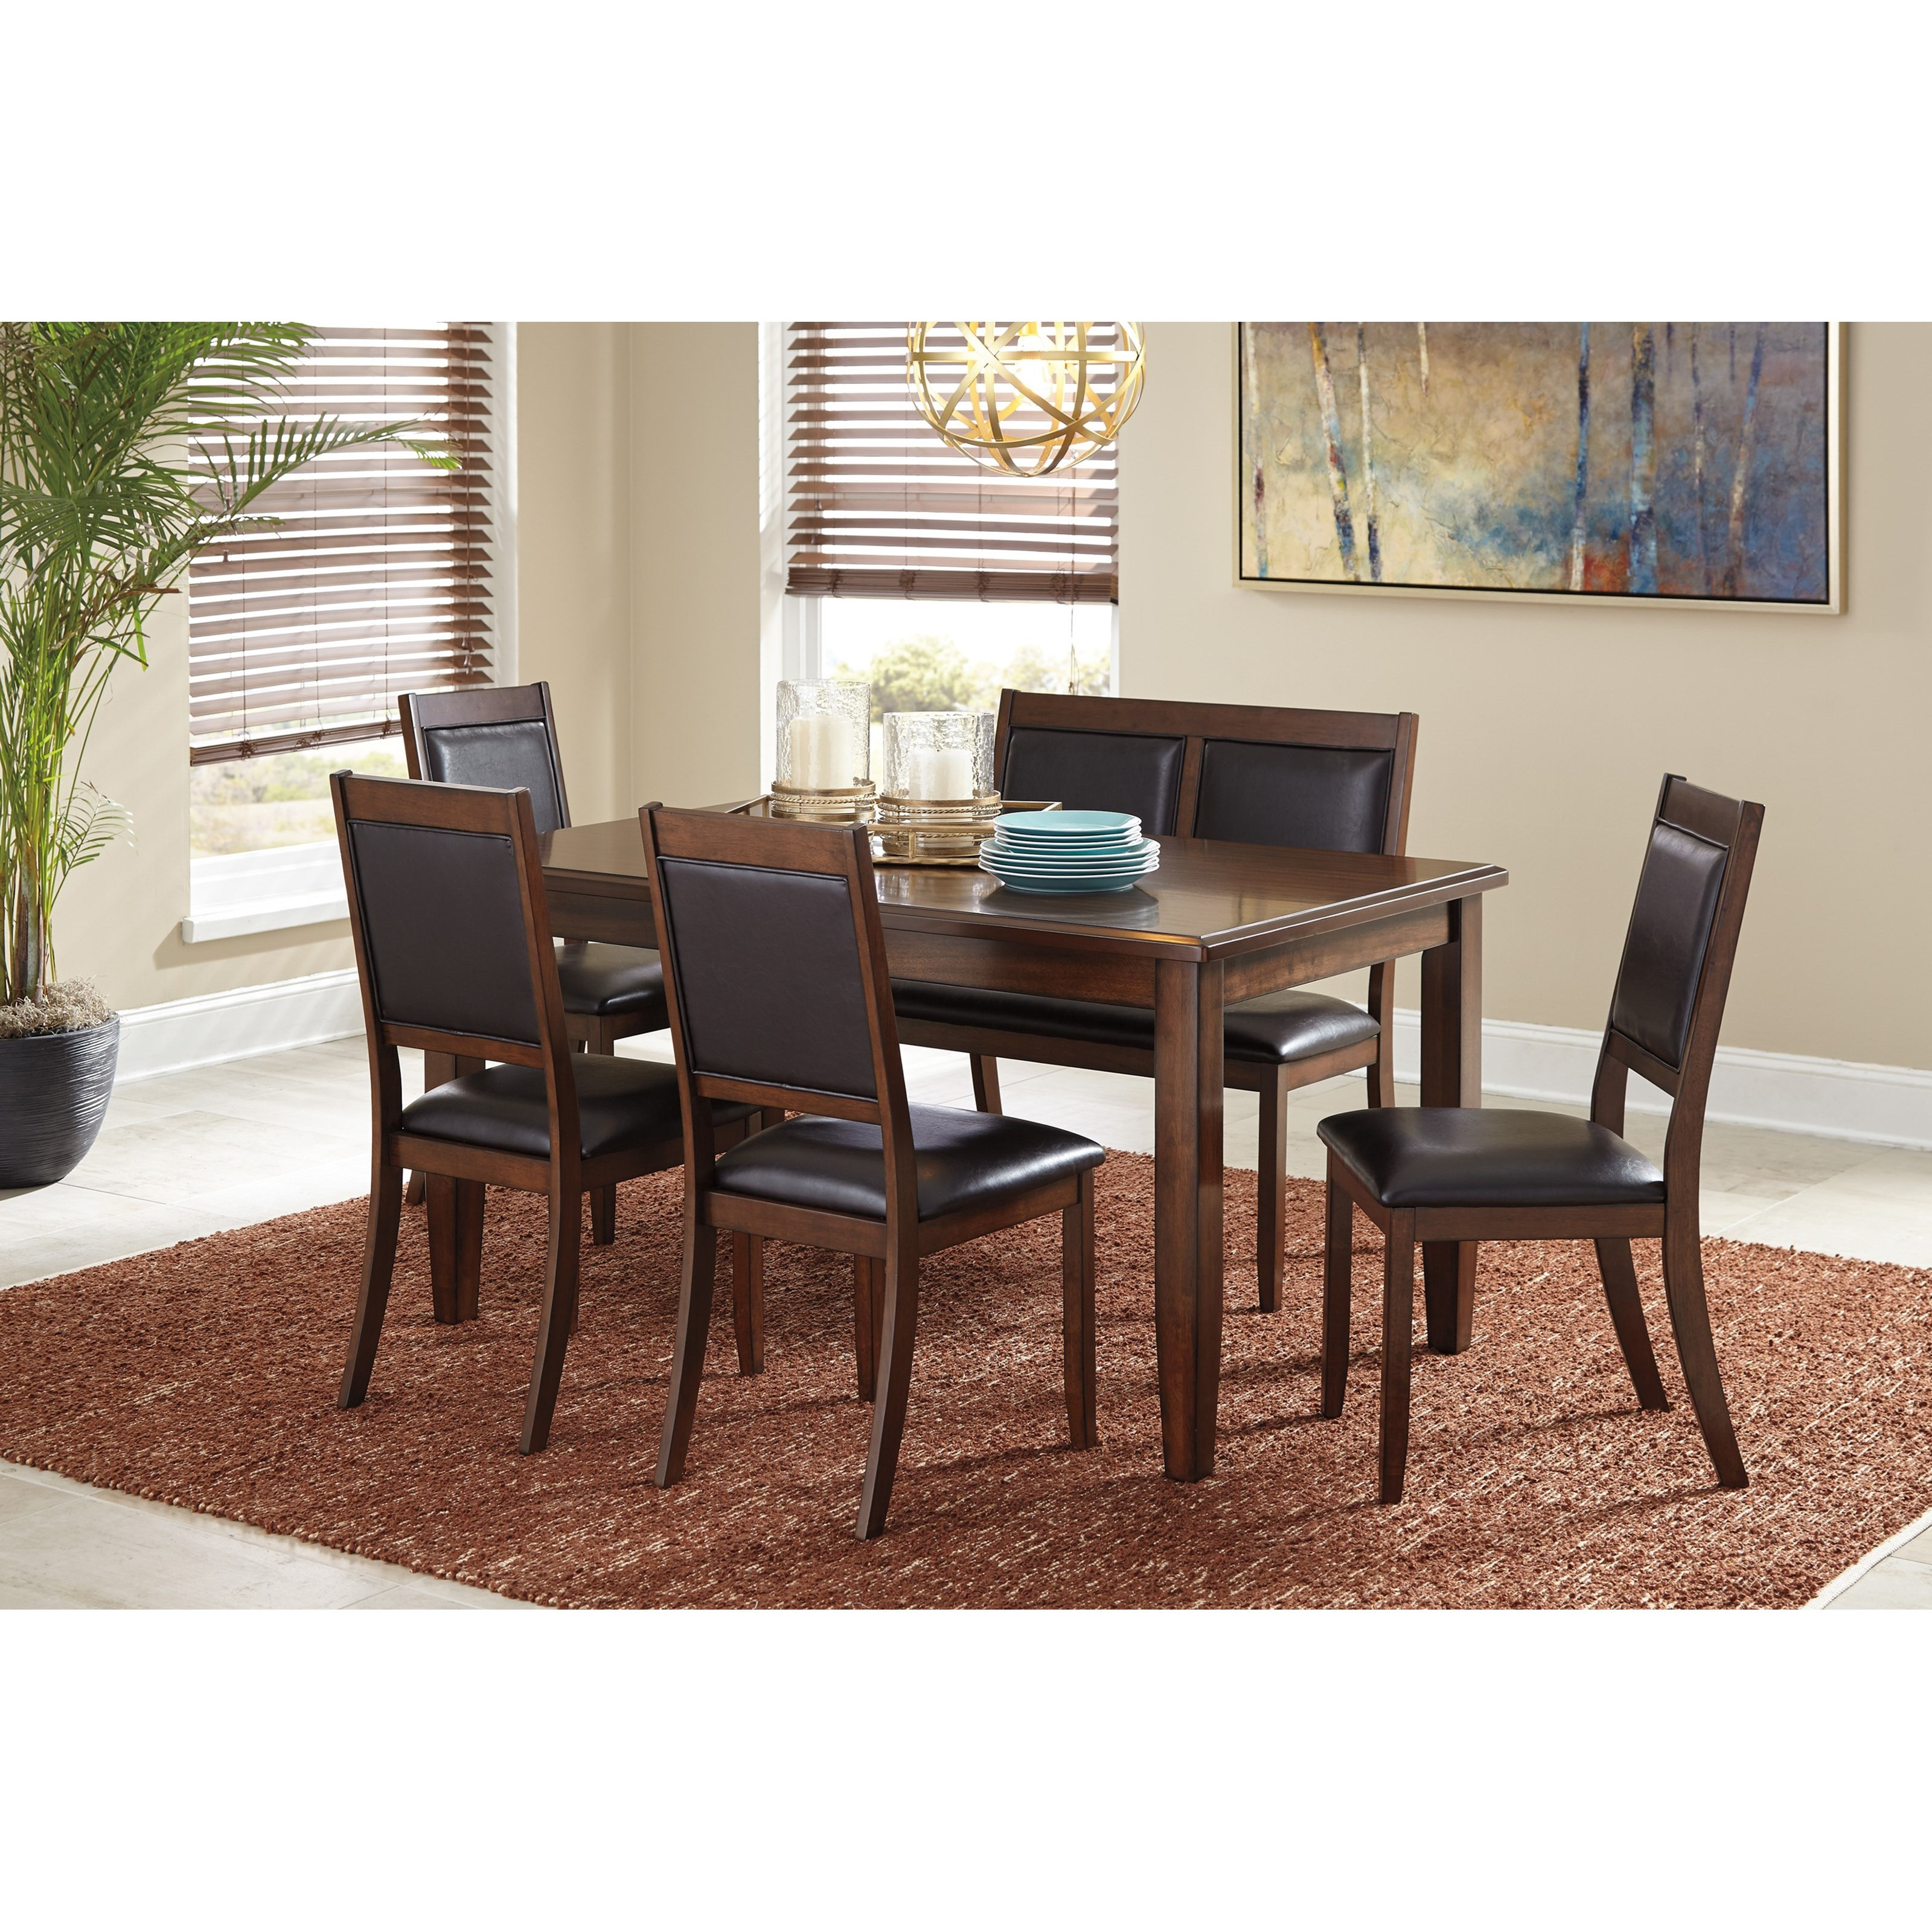 Signature Design By Ashley Meredy 6 Piece Dining Room Table Set With Bench Miskelly Furniture